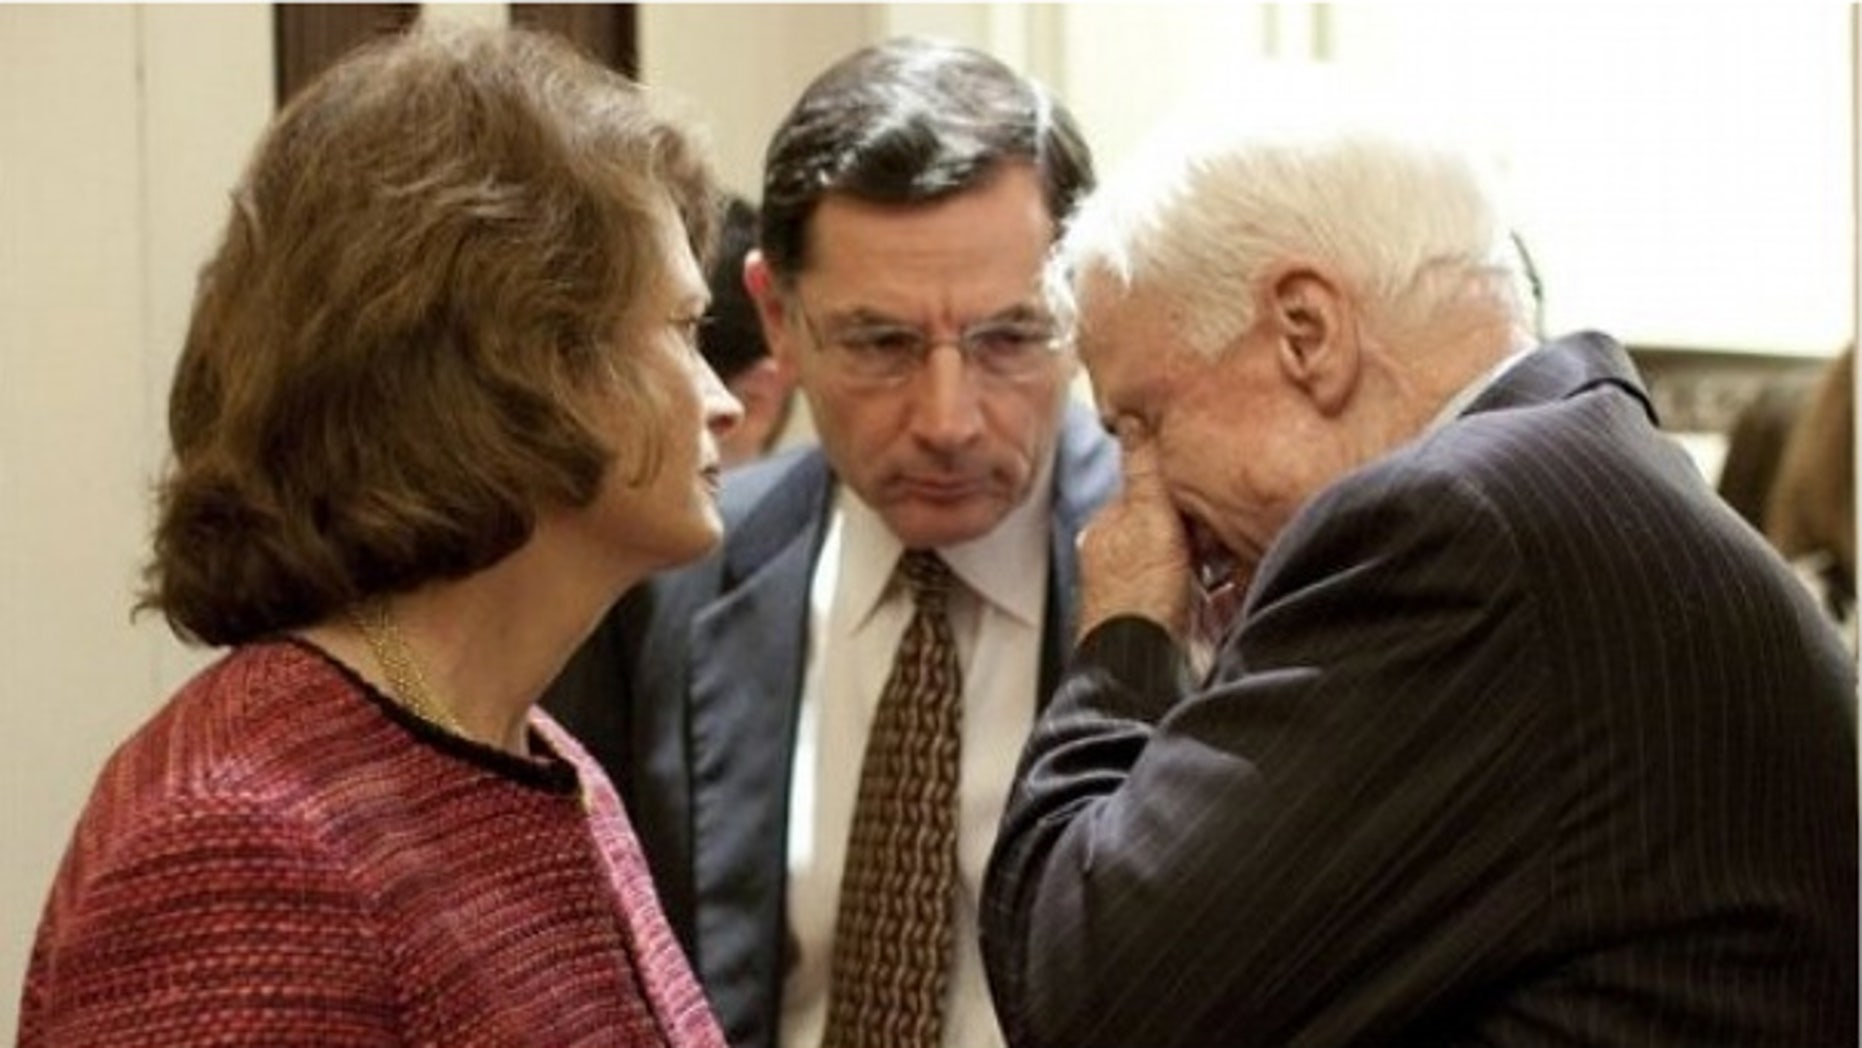 Dec. 9: Sen. John Barrasso, R-Wyo., talks with Alaska Sen. Lisa Murkowski and Arizona Sen. John McCain in a Senate hallway. (AP)